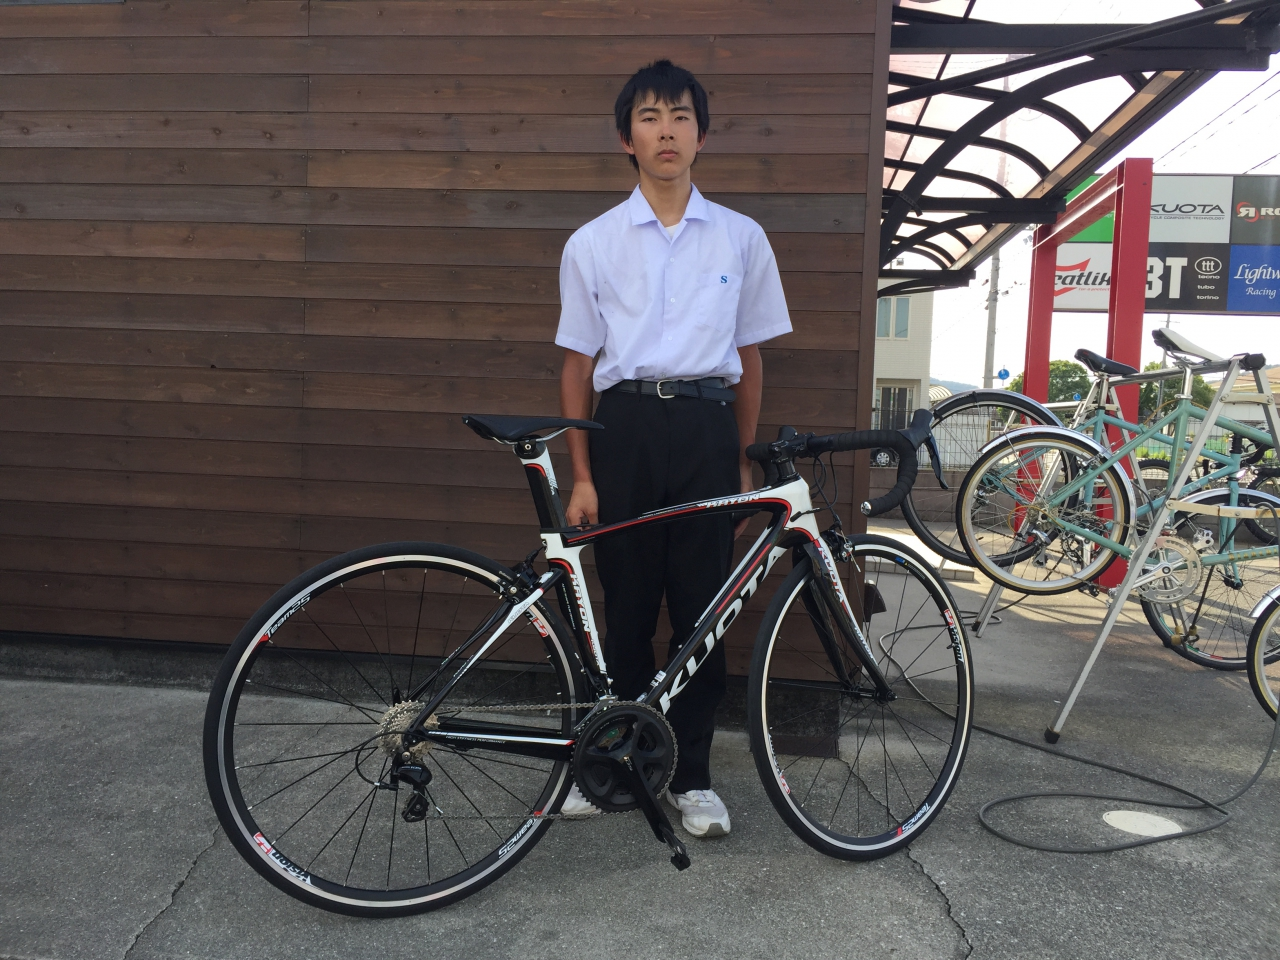 KUOTA KRYON 納車…from Aさま!